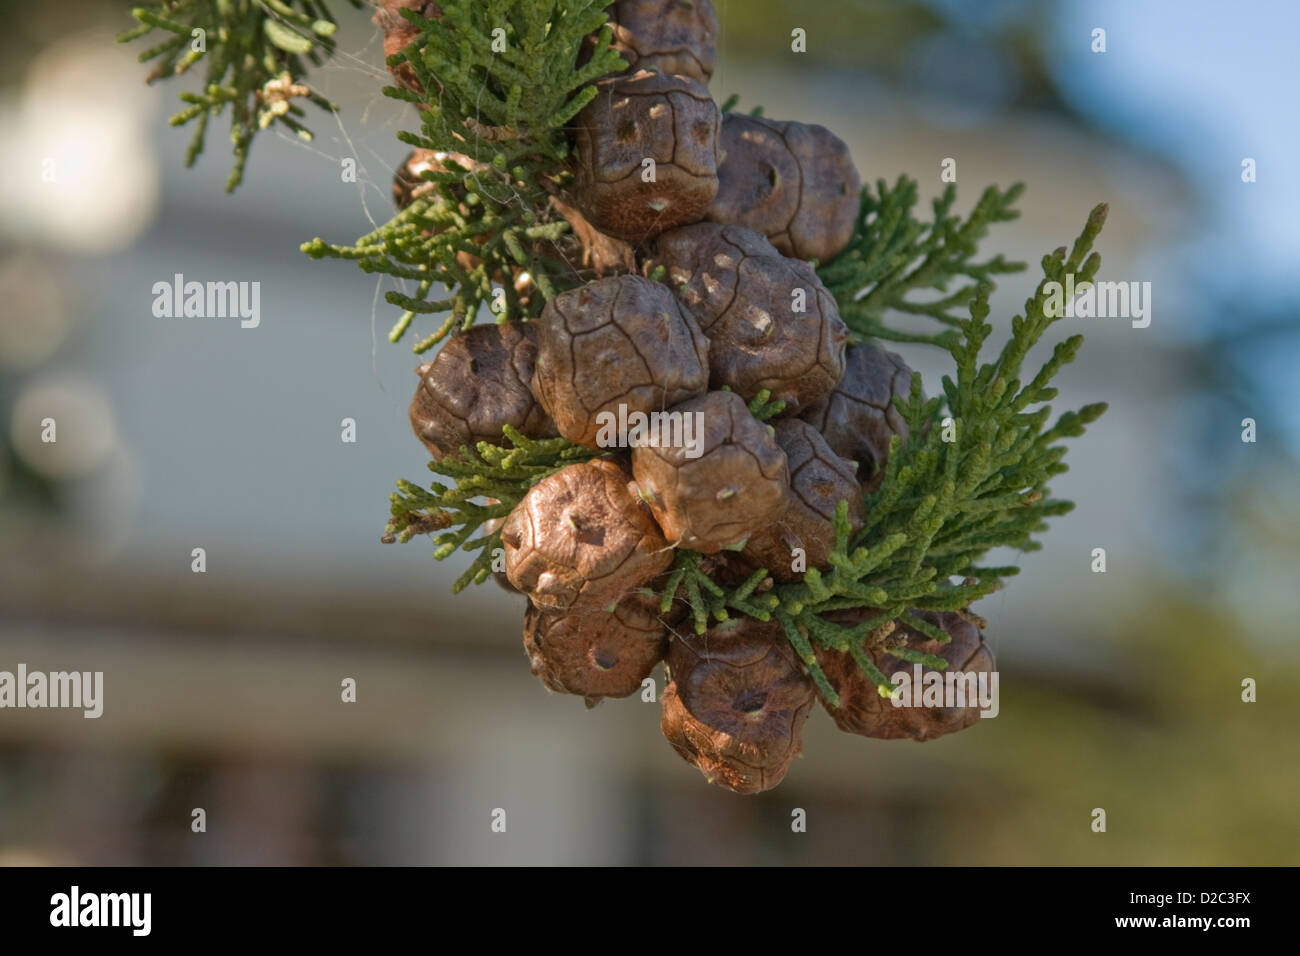 New pine cones growing on a Monterey Cypress Tree in Seaside, California - Stock Image